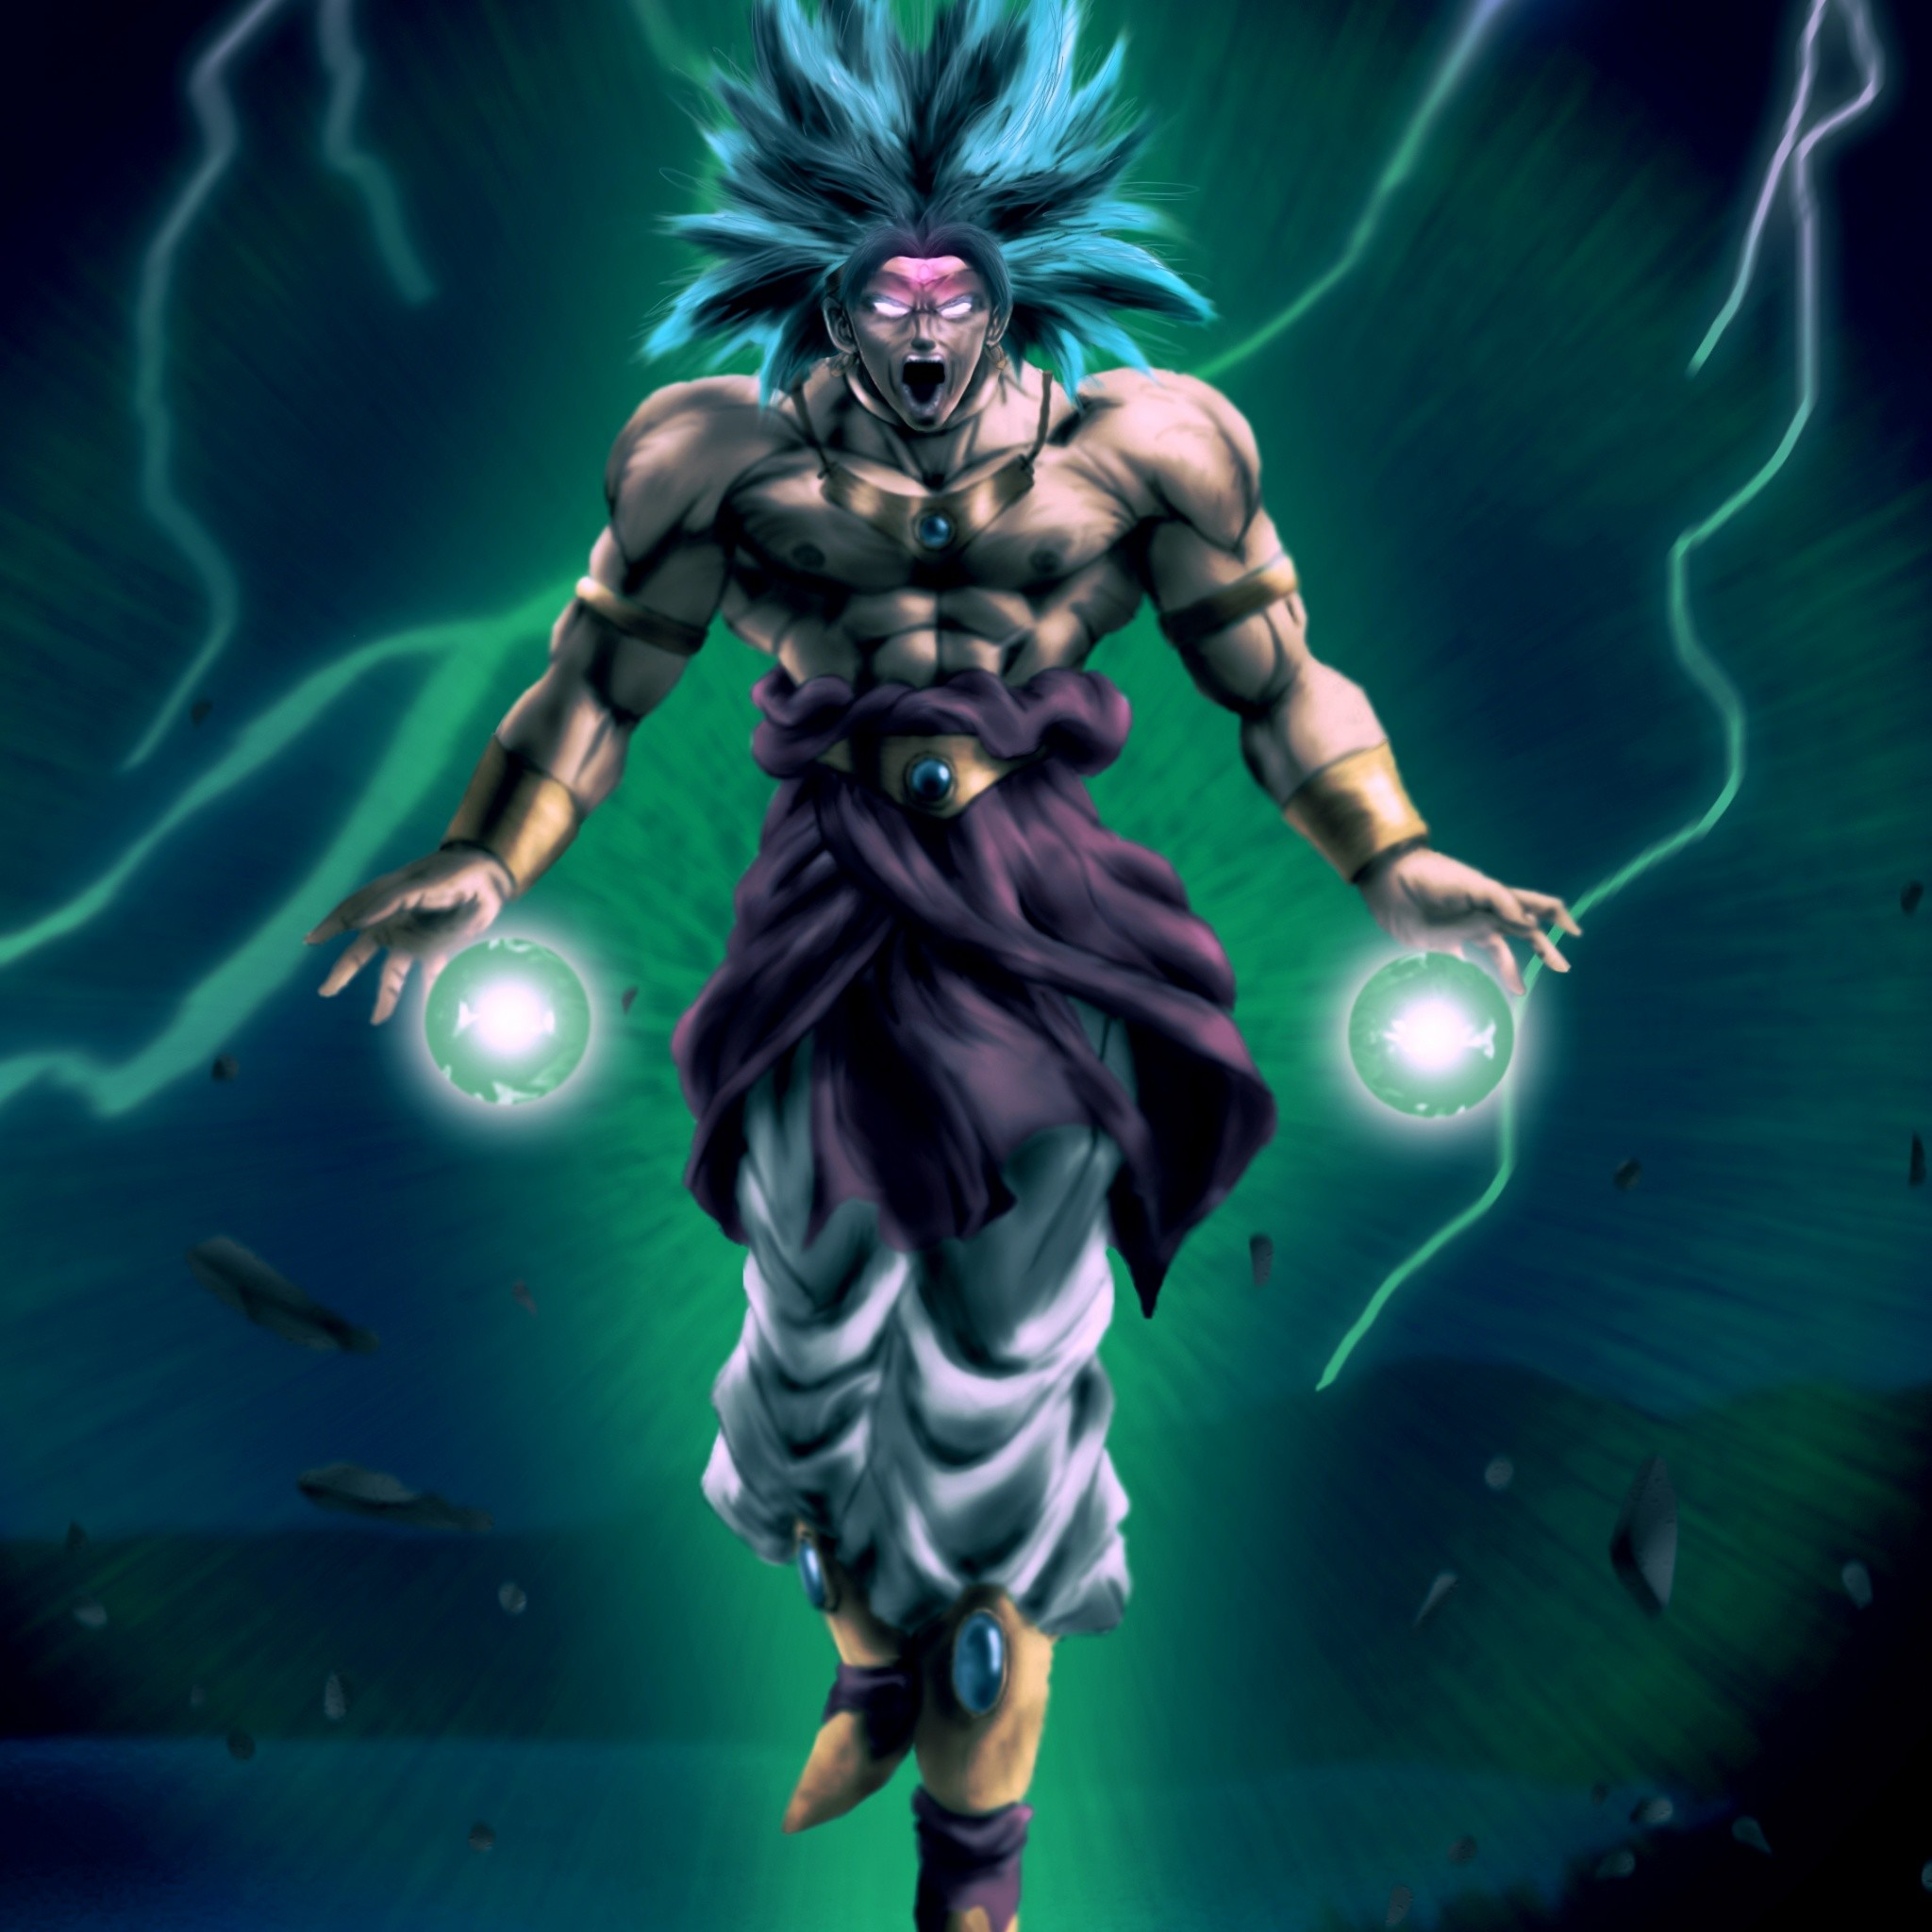 1920x1080 Anime Dragon Ball Z Goku Vegeta Broly Gotenks